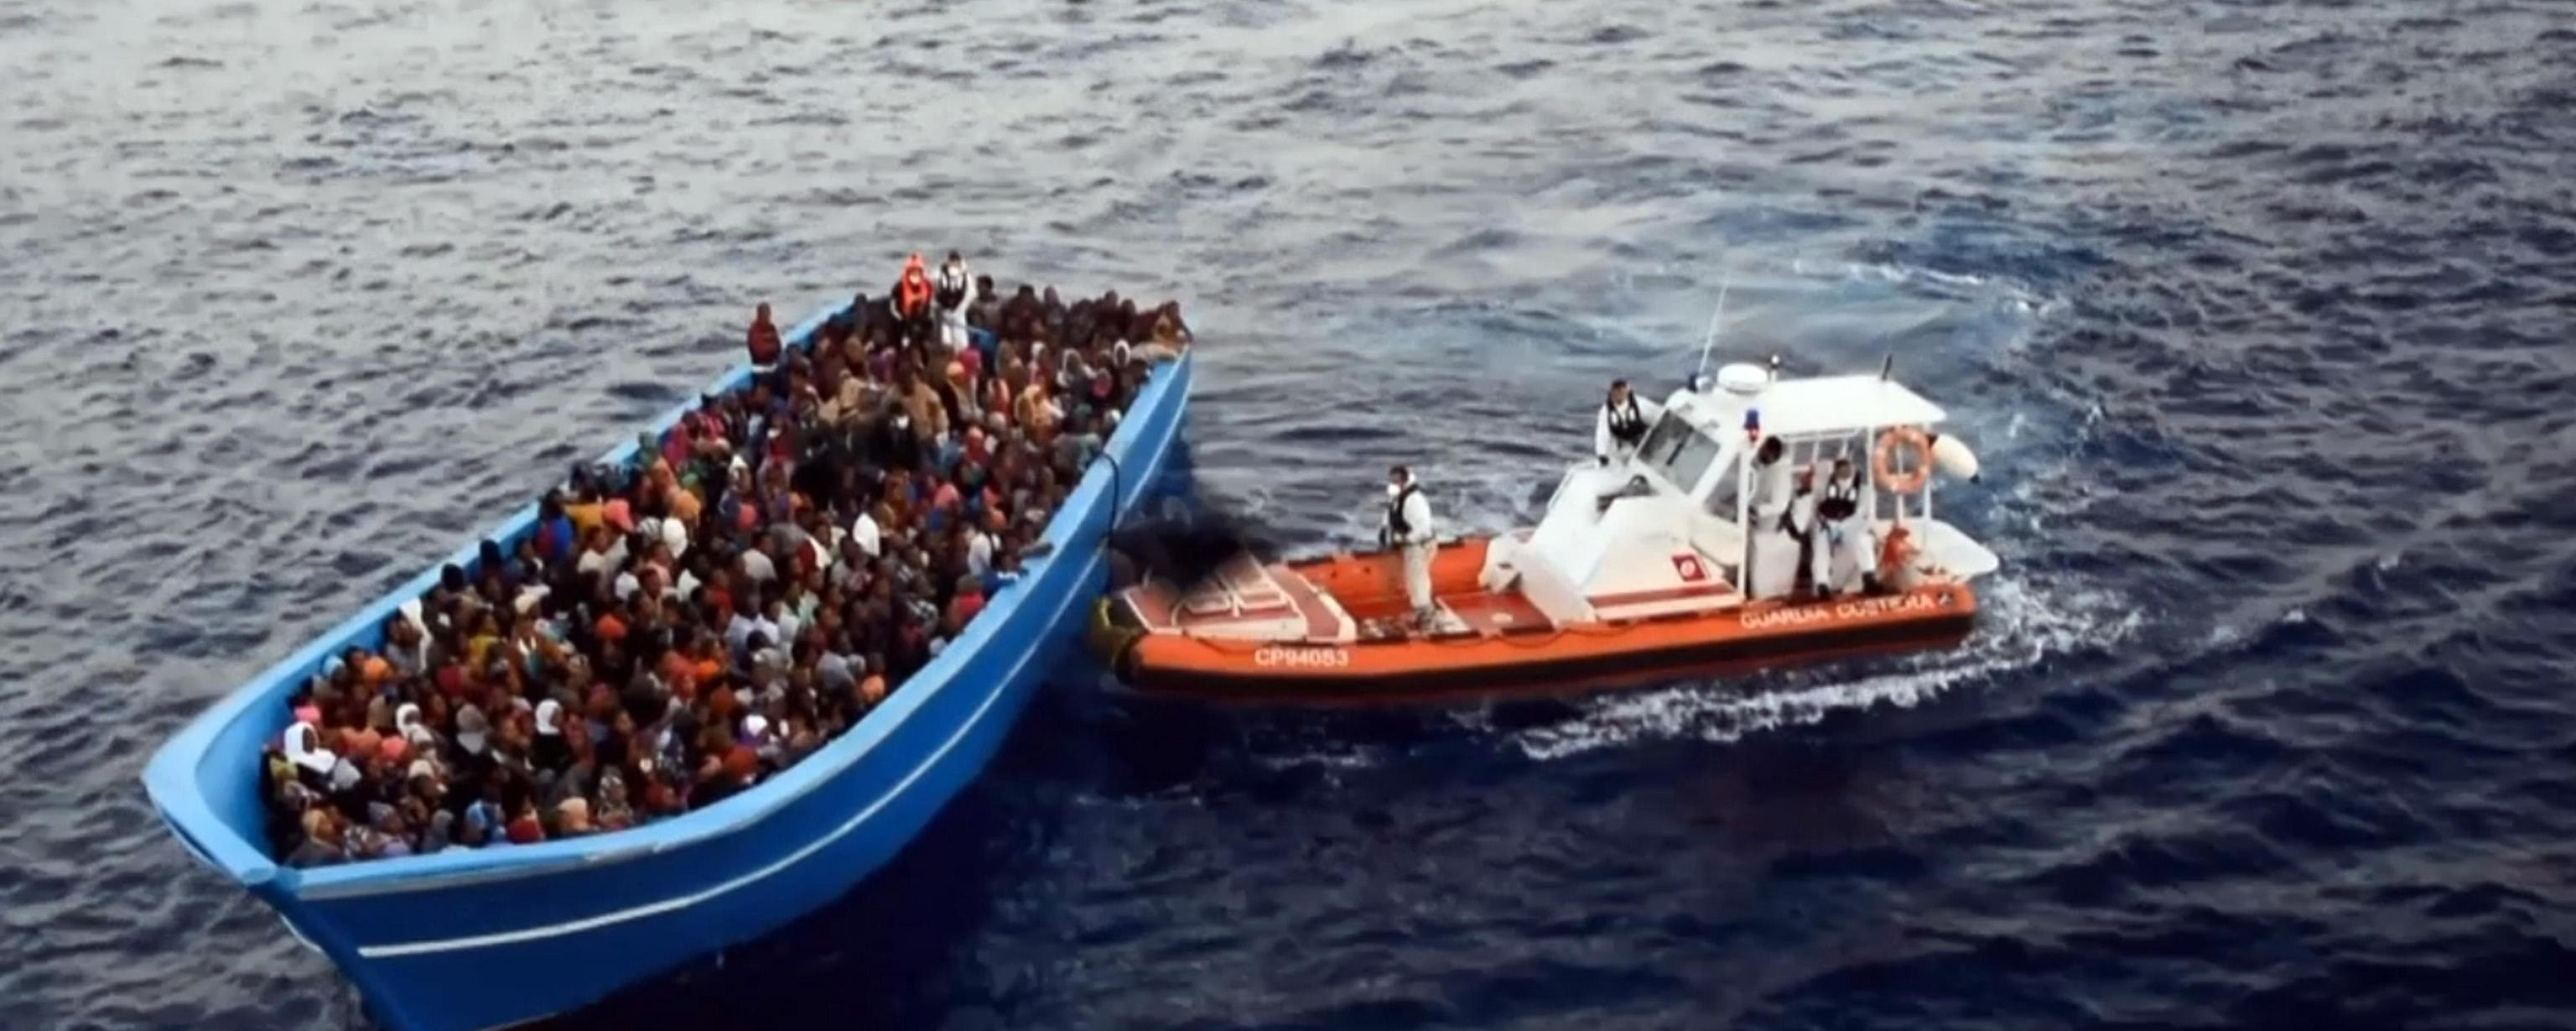 Nearly 4,700 Migrants Were Rescued Off Libya's Coast in a Single Day